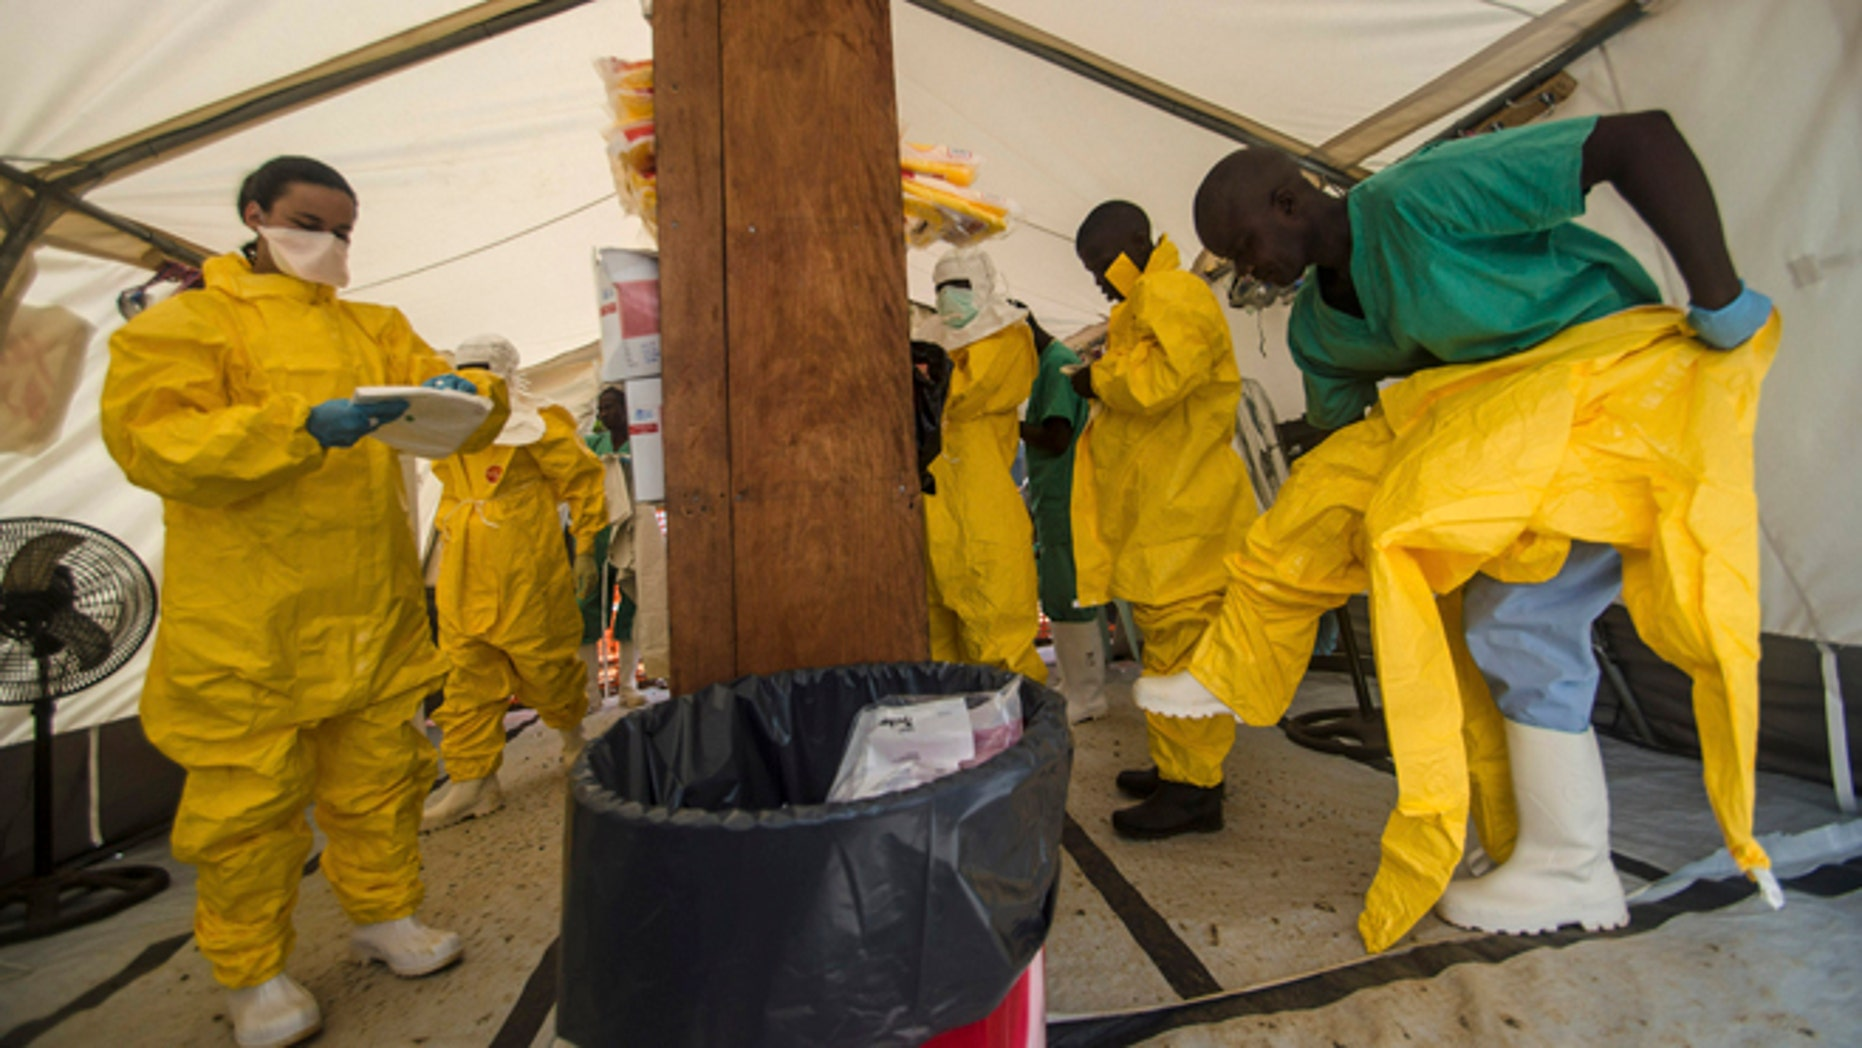 Medical staff working with Medecins sans Frontieres (MSF) put on their protective gear before entering an isolation area at the MSF Ebola treatment centre in Kailahun July 20, 2014. Sierra Leone now has the highest number of Ebola cases, at 454, surpassing neighbouring Guinea where the outbreak originated in February. Picture taken July 20, 2014.    REUTERS/Tommy Trenchard (SIERRA LEONE - Tags: HEALTH) - RTR40DKX